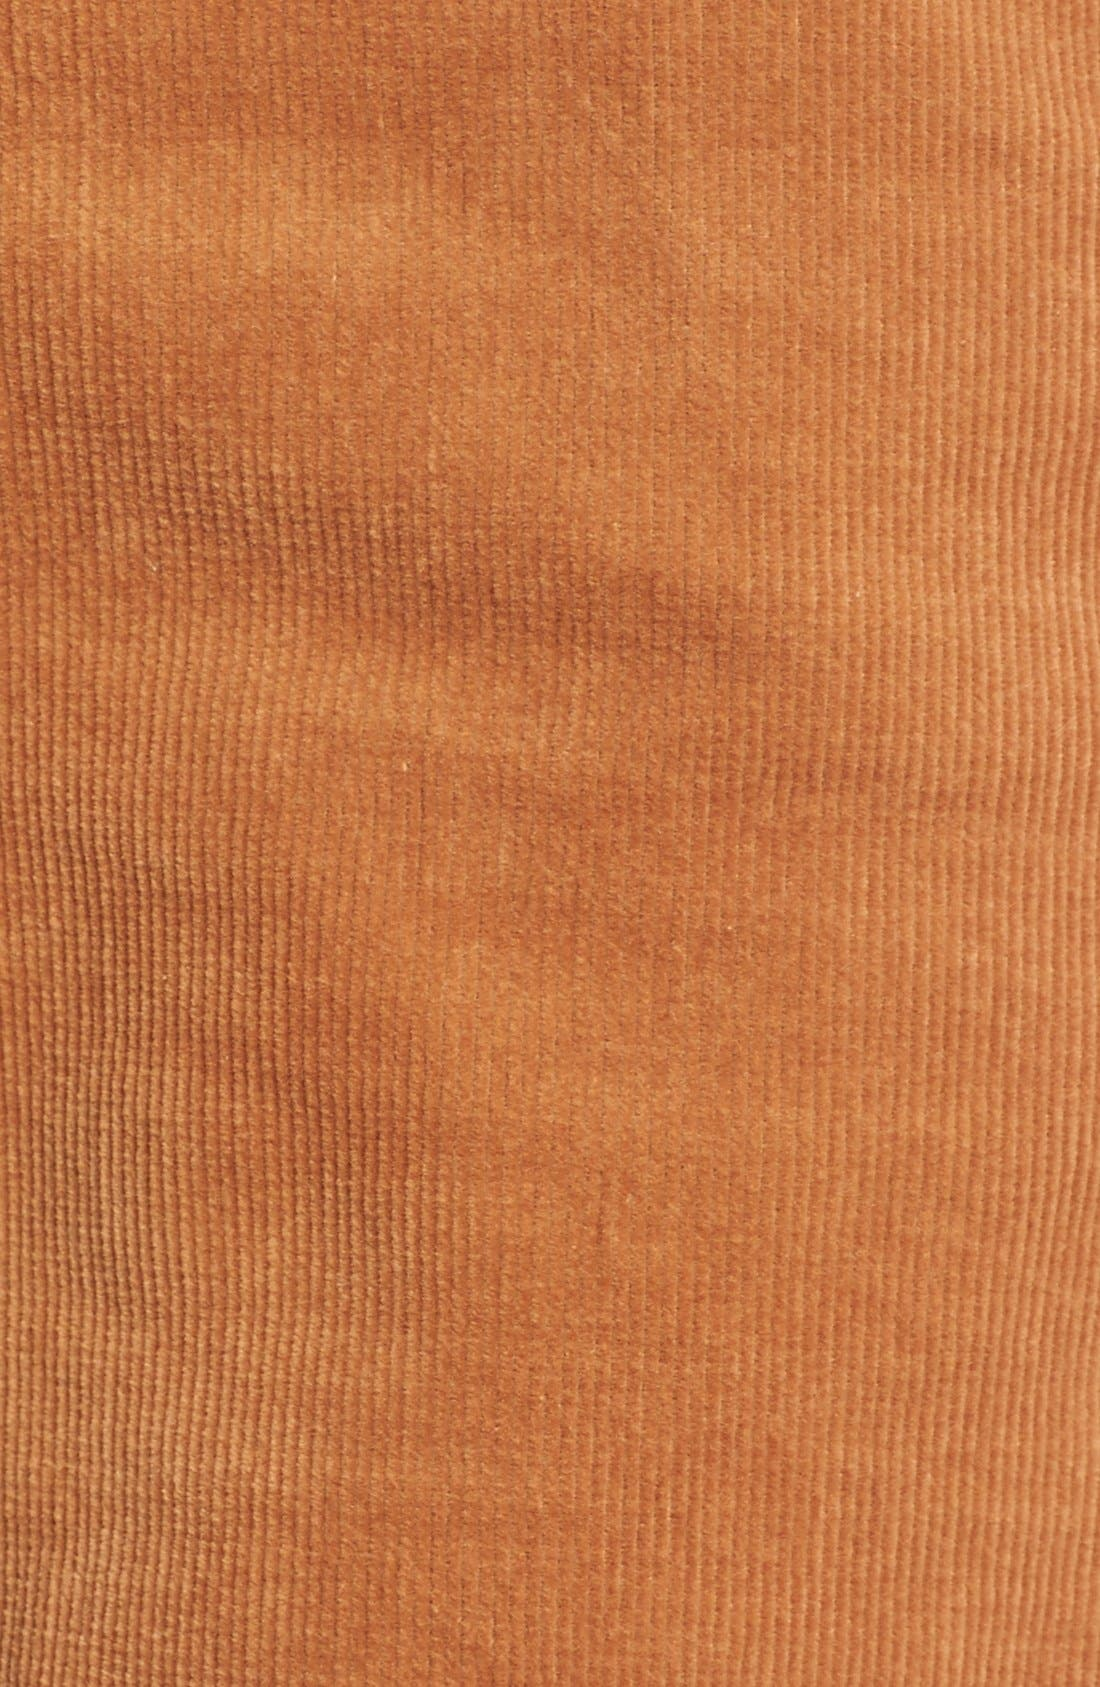 Corduroy Roll Cuff Shorts,                             Alternate thumbnail 5, color,                             200